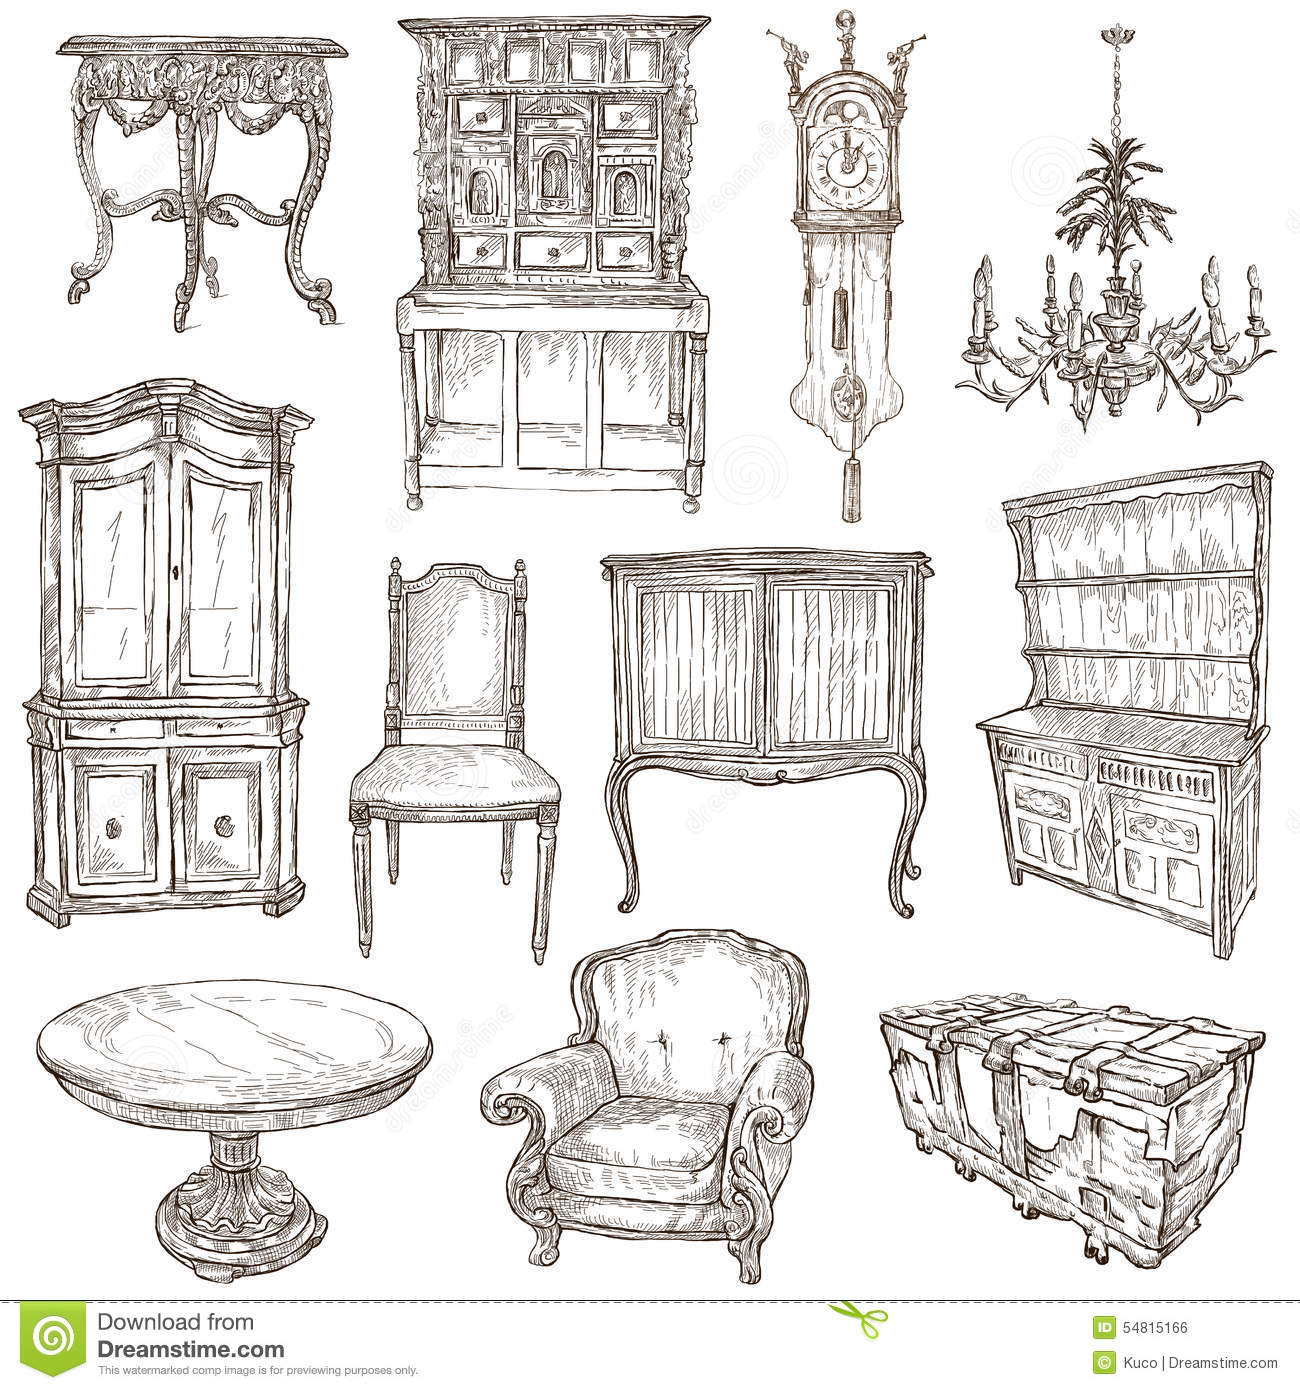 Furniture Sketches Furniture Freehand Sketches On White Stock Illustration Image